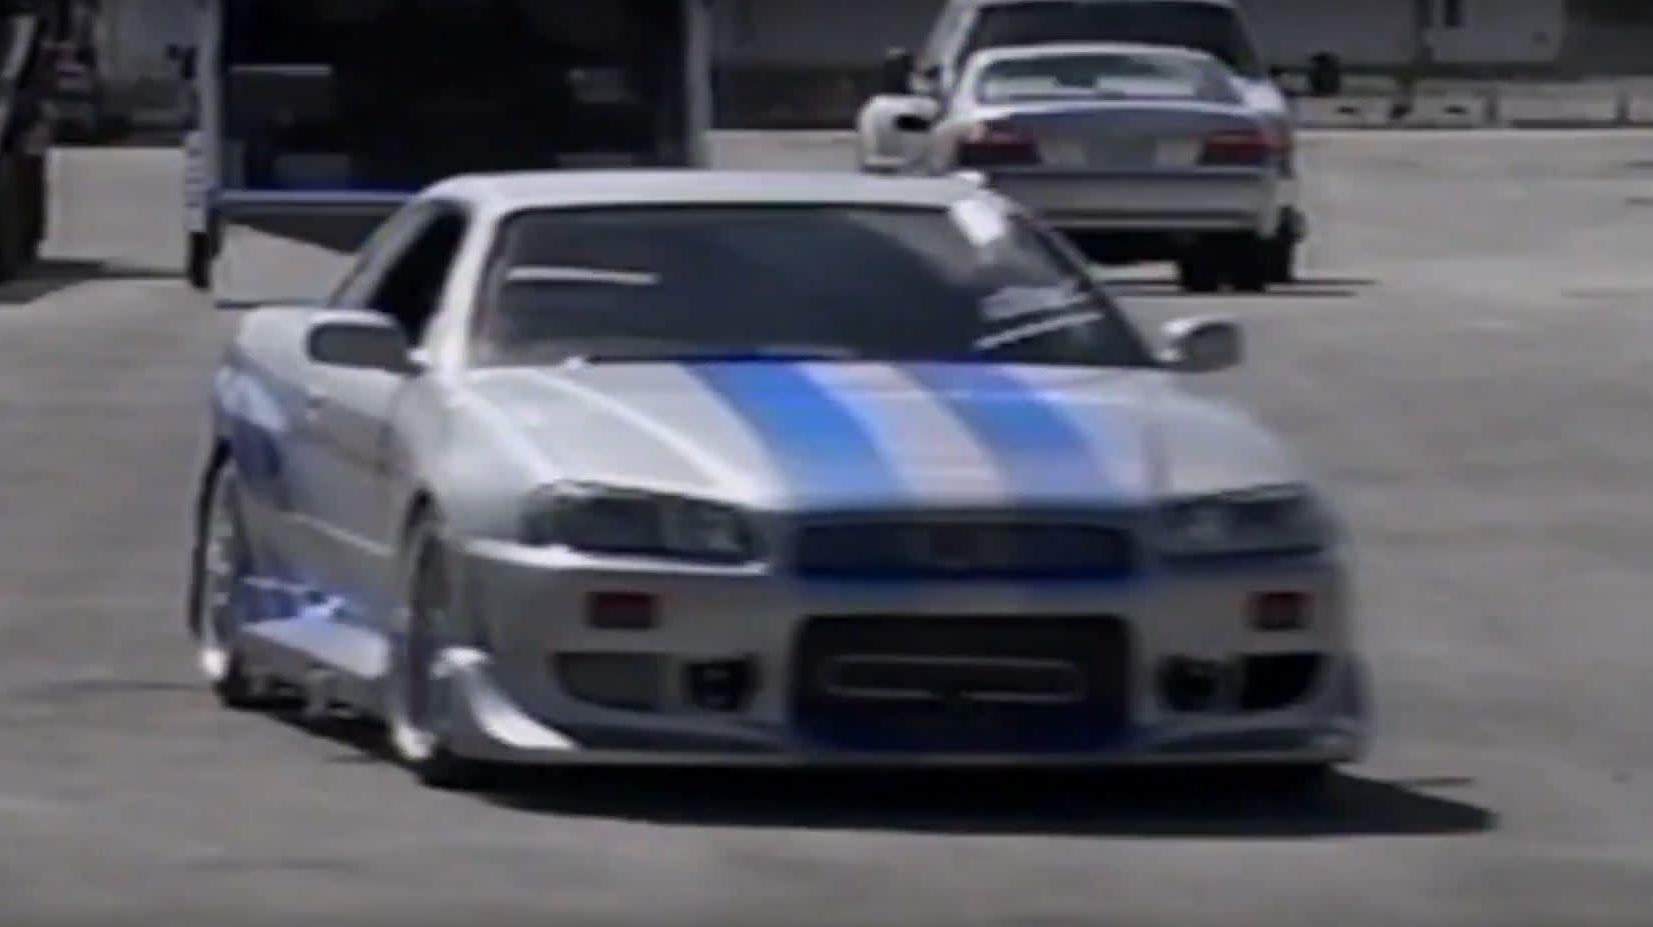 All Of The Skylines Used In 2 Fast 2 Furious Were Real GT-Rs